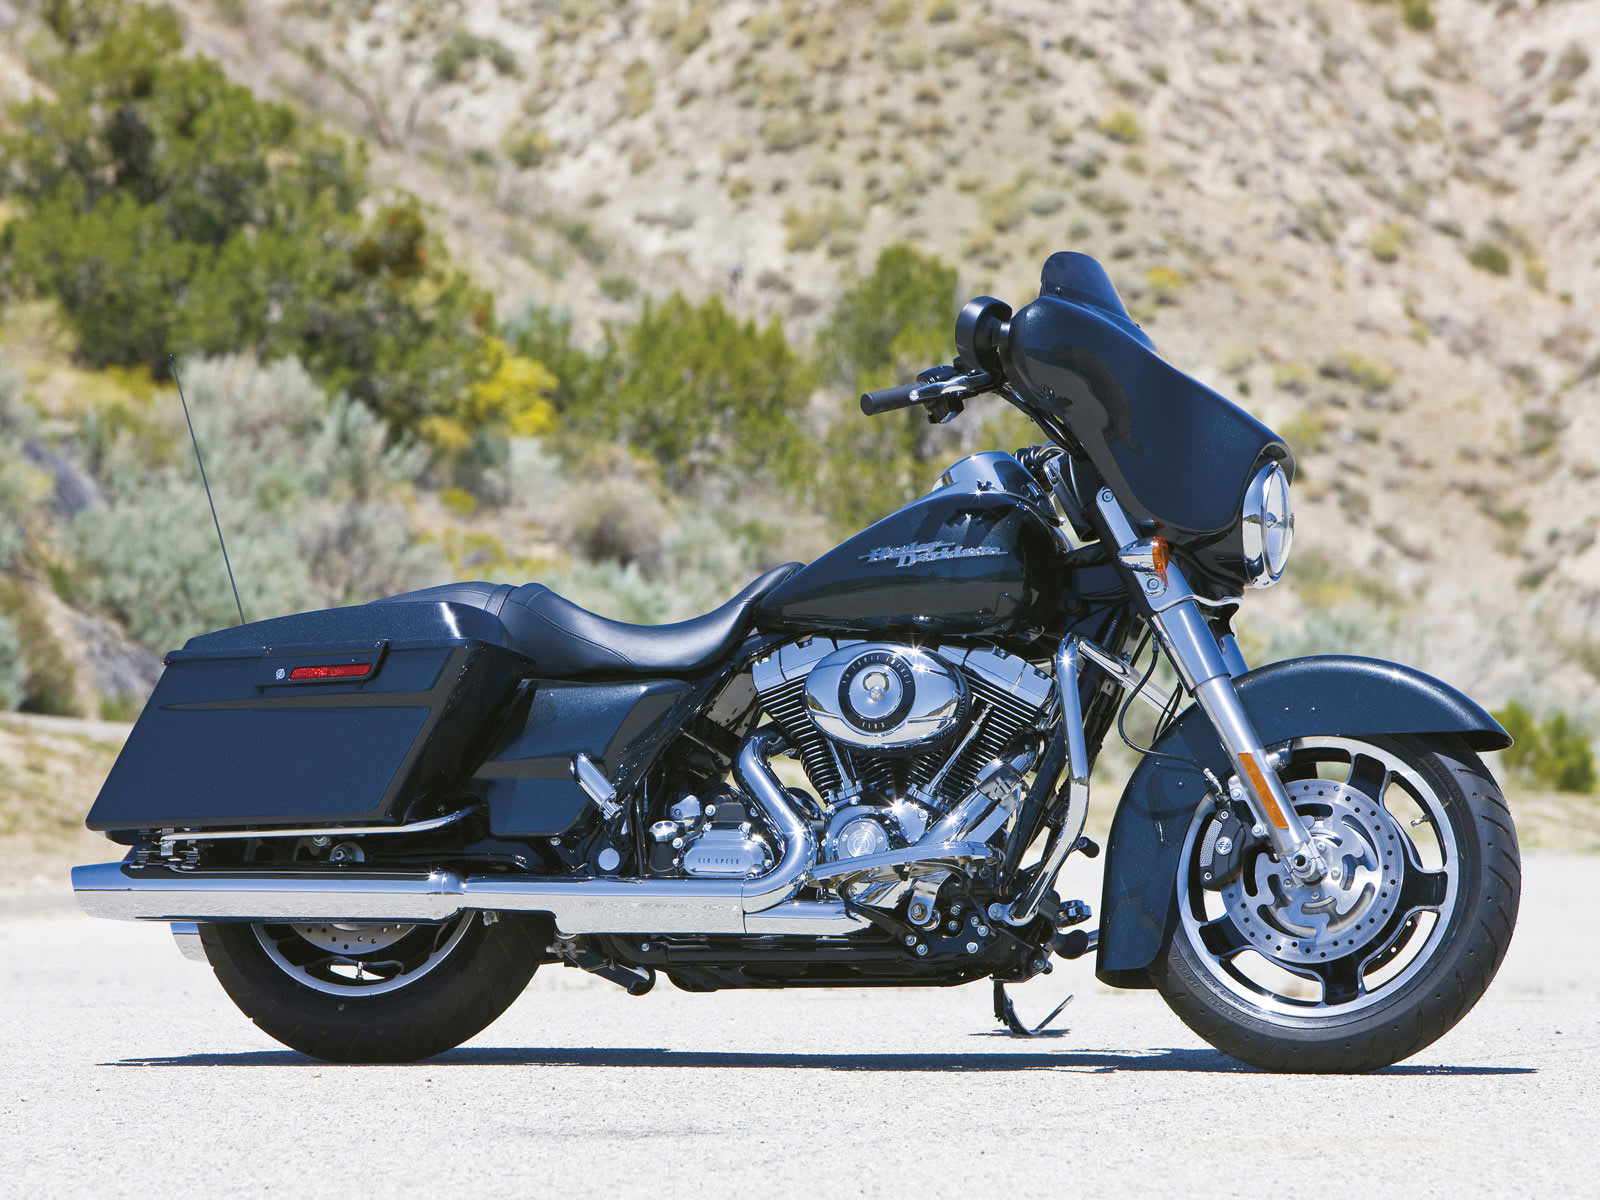 2007 Harley-Davidson FLHX Street Glide: pics, specs and information ...